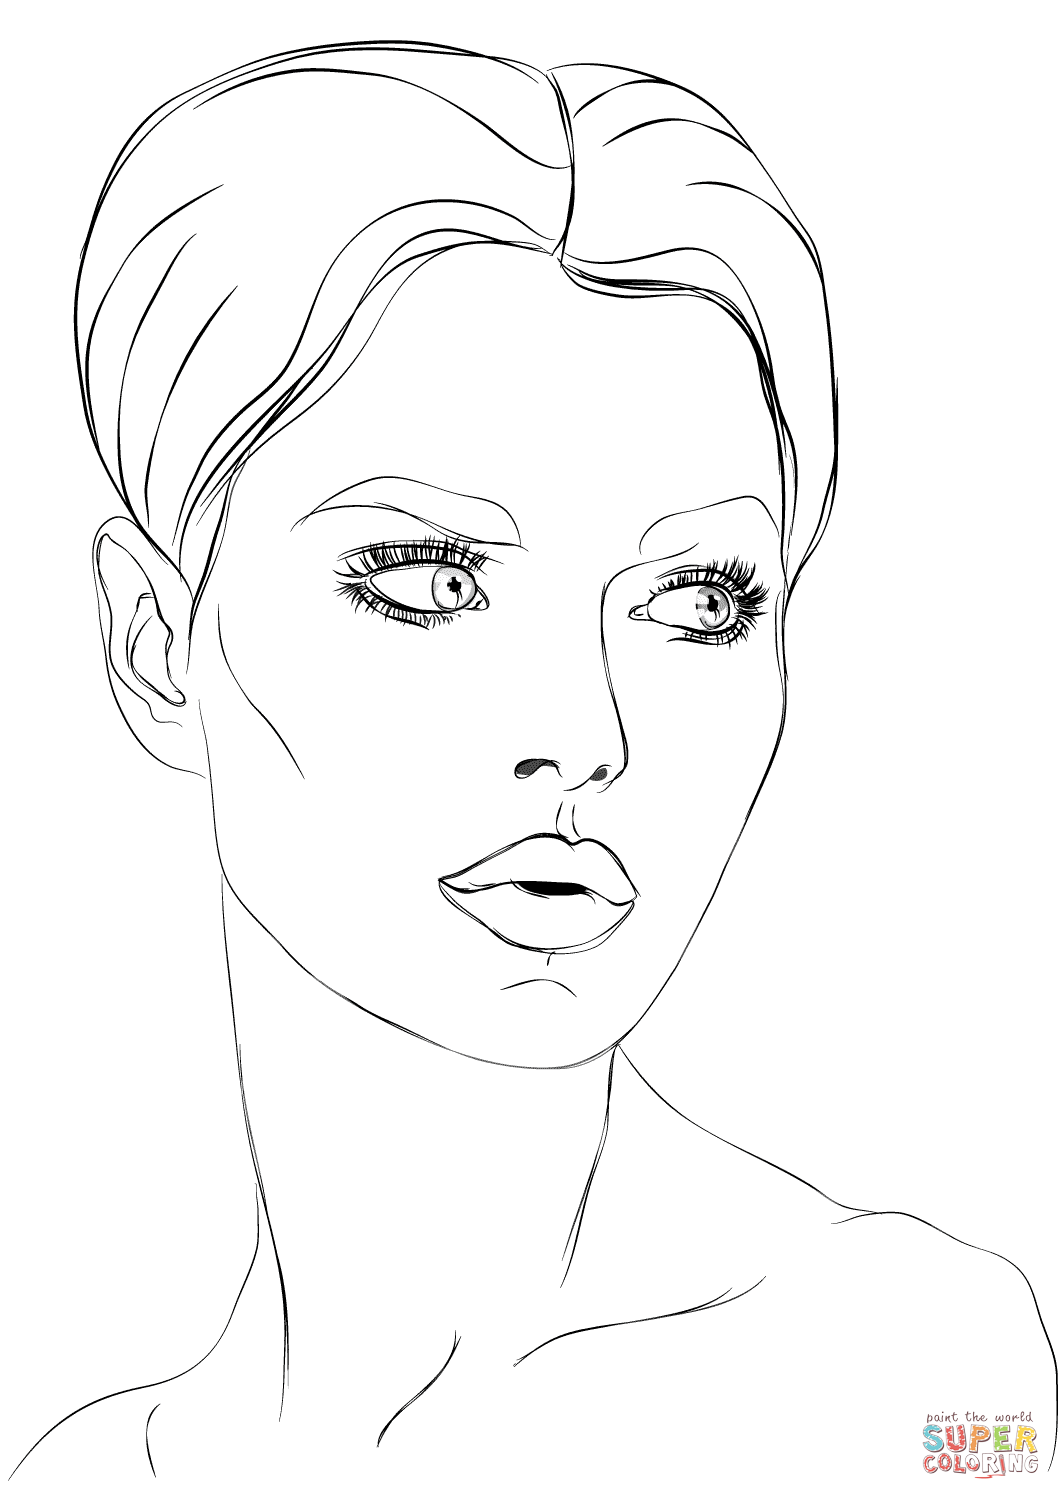 Coloring Pages Of Girls Faces At Getcolorings